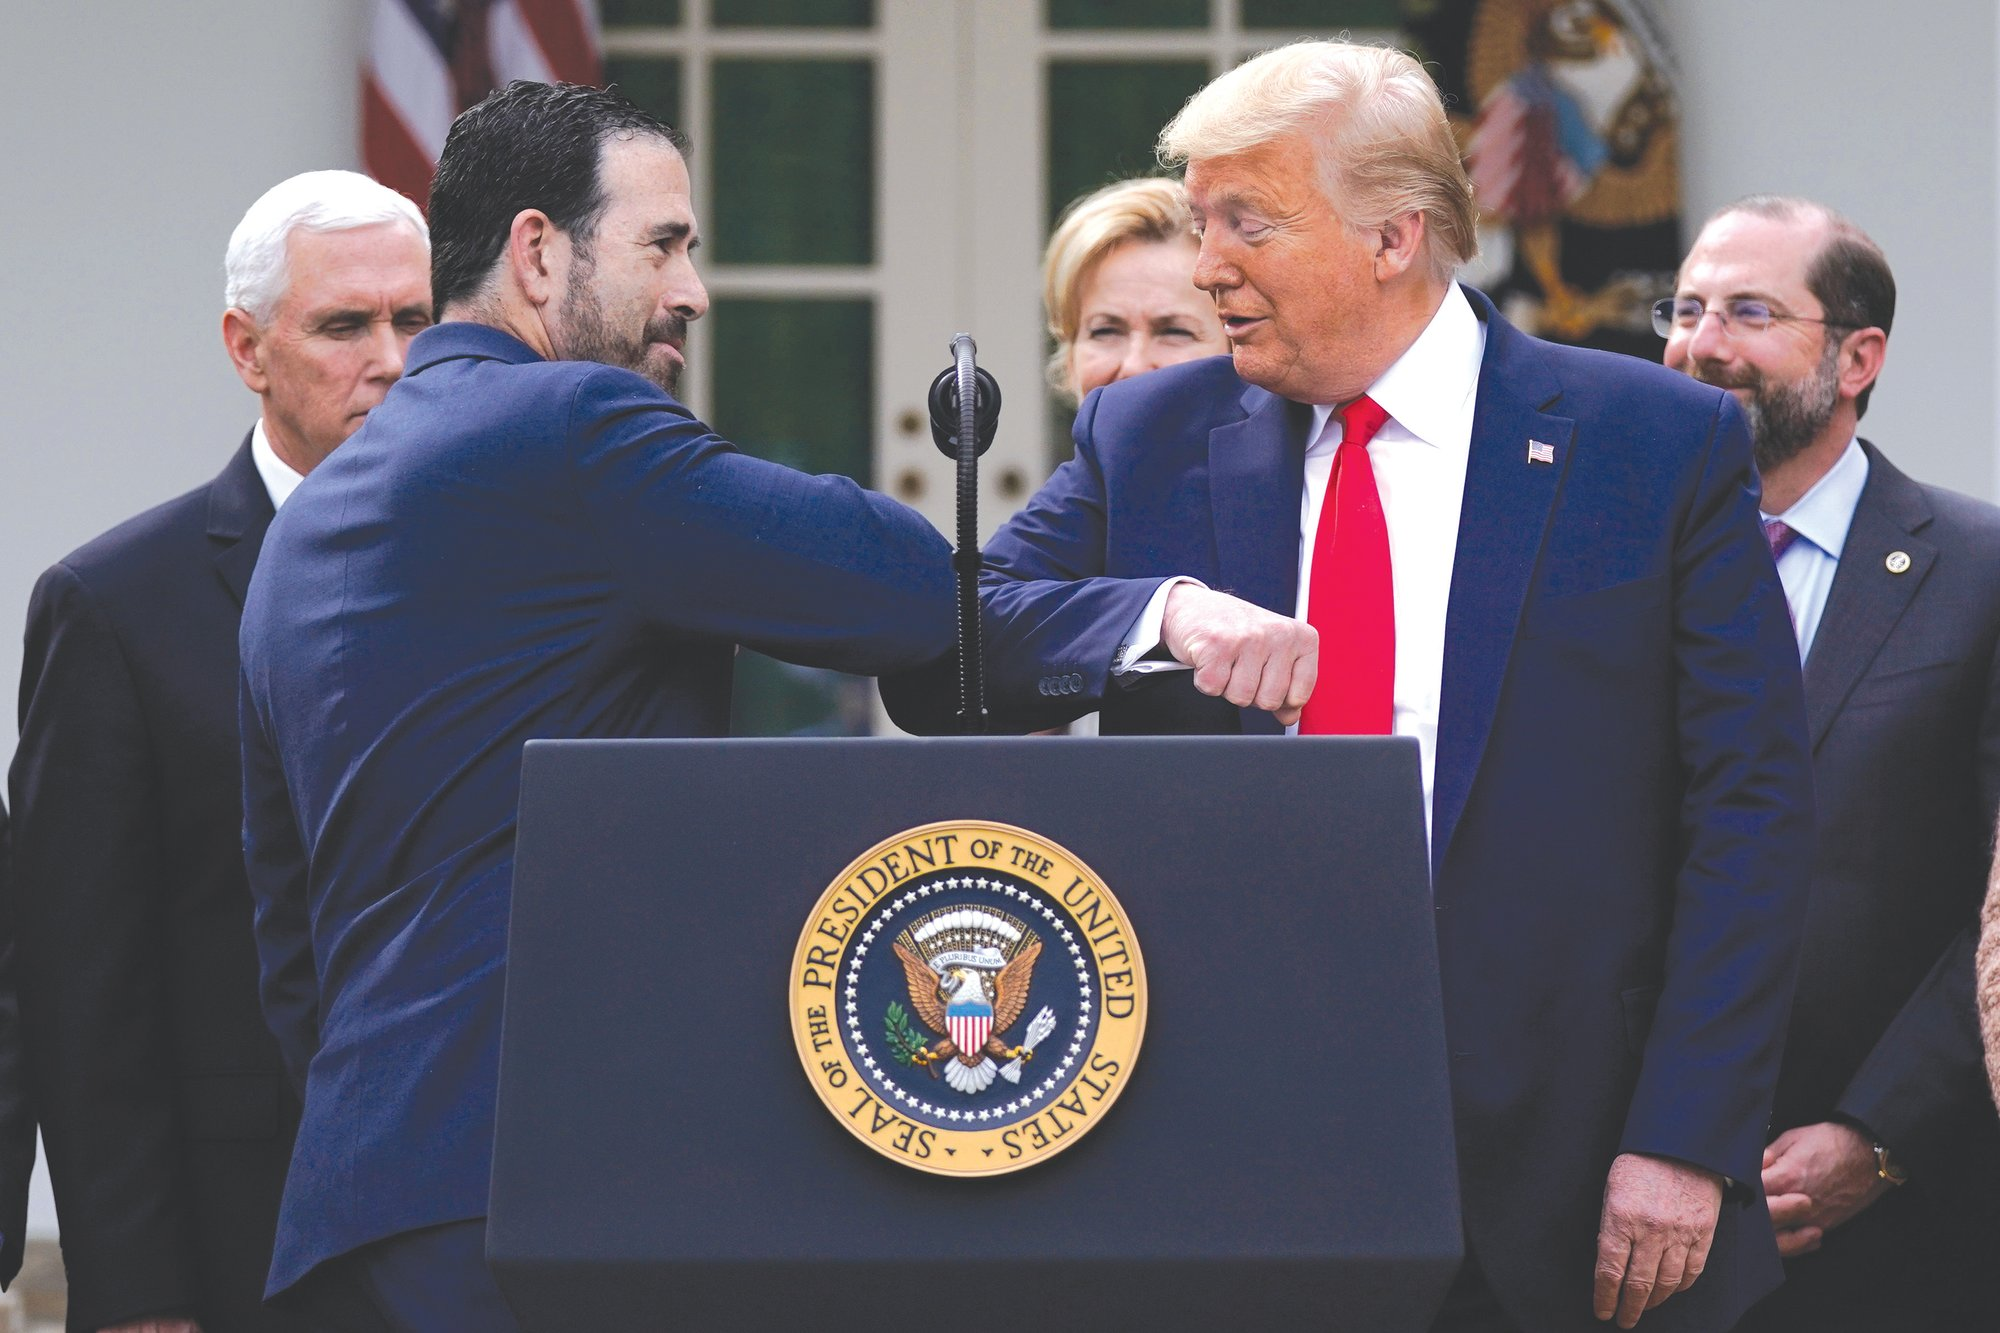 LHC Group's Bruce Greenstein elbow bumps with President Donald Trump during a news conference about the coronavirus in the Rose Garden at the White House on March 13 in Washington.